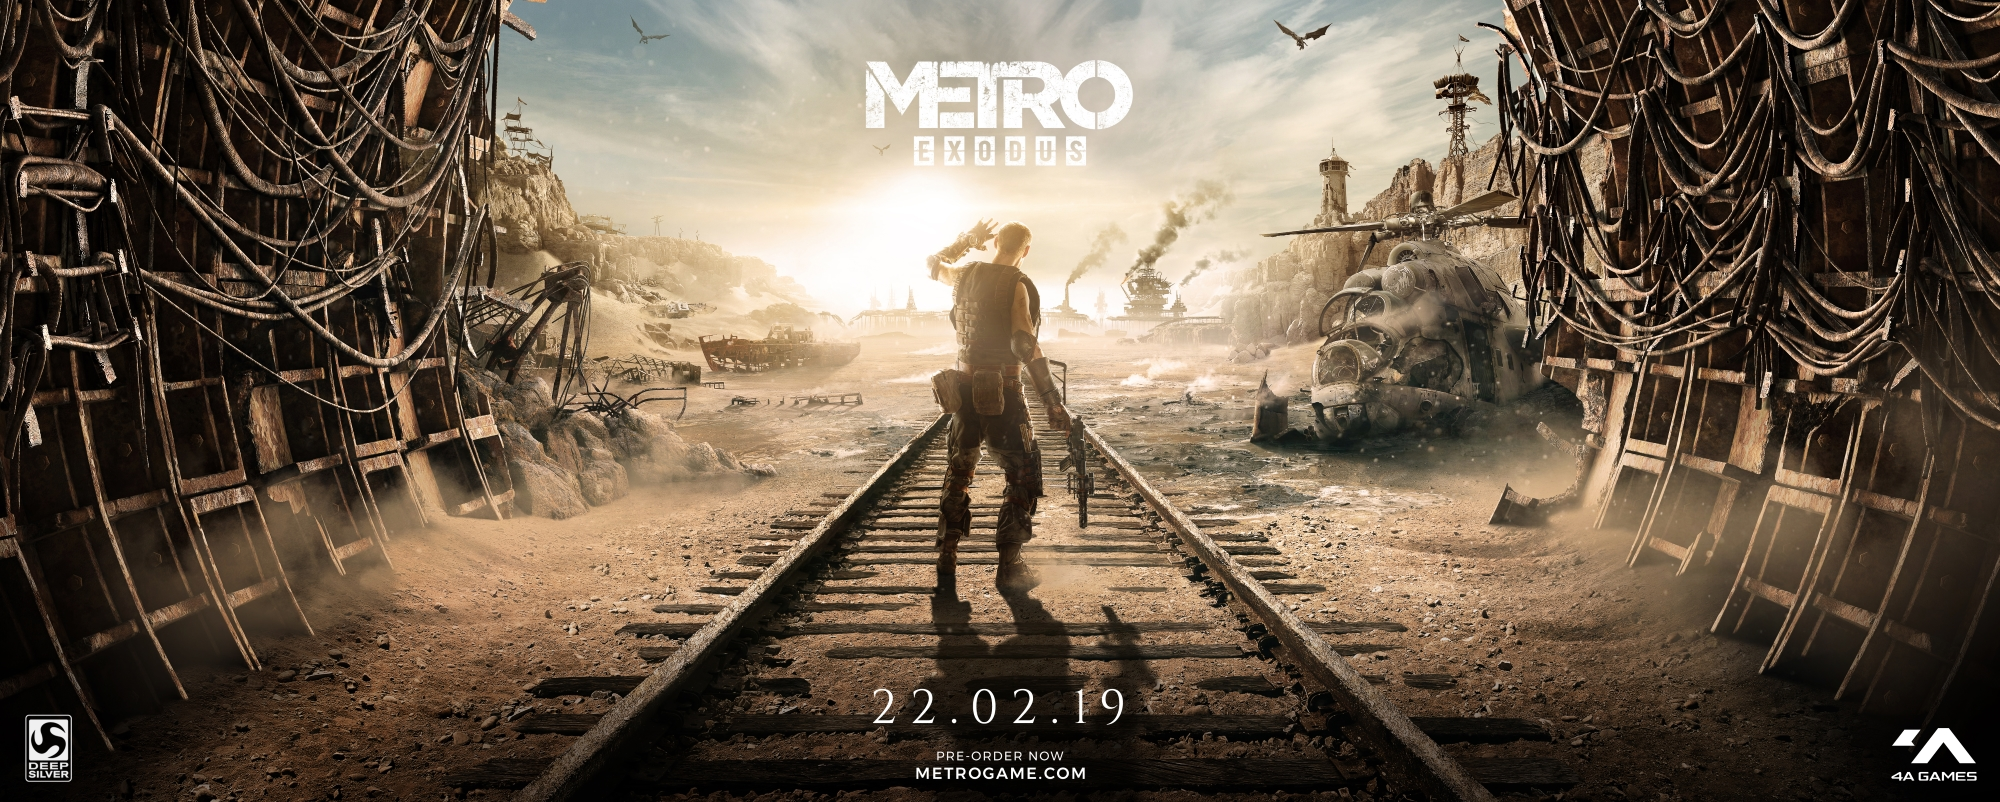 Metro Exodus Dmitry Glukhovsky interview – 'I lived in a post-apocalyptic state'